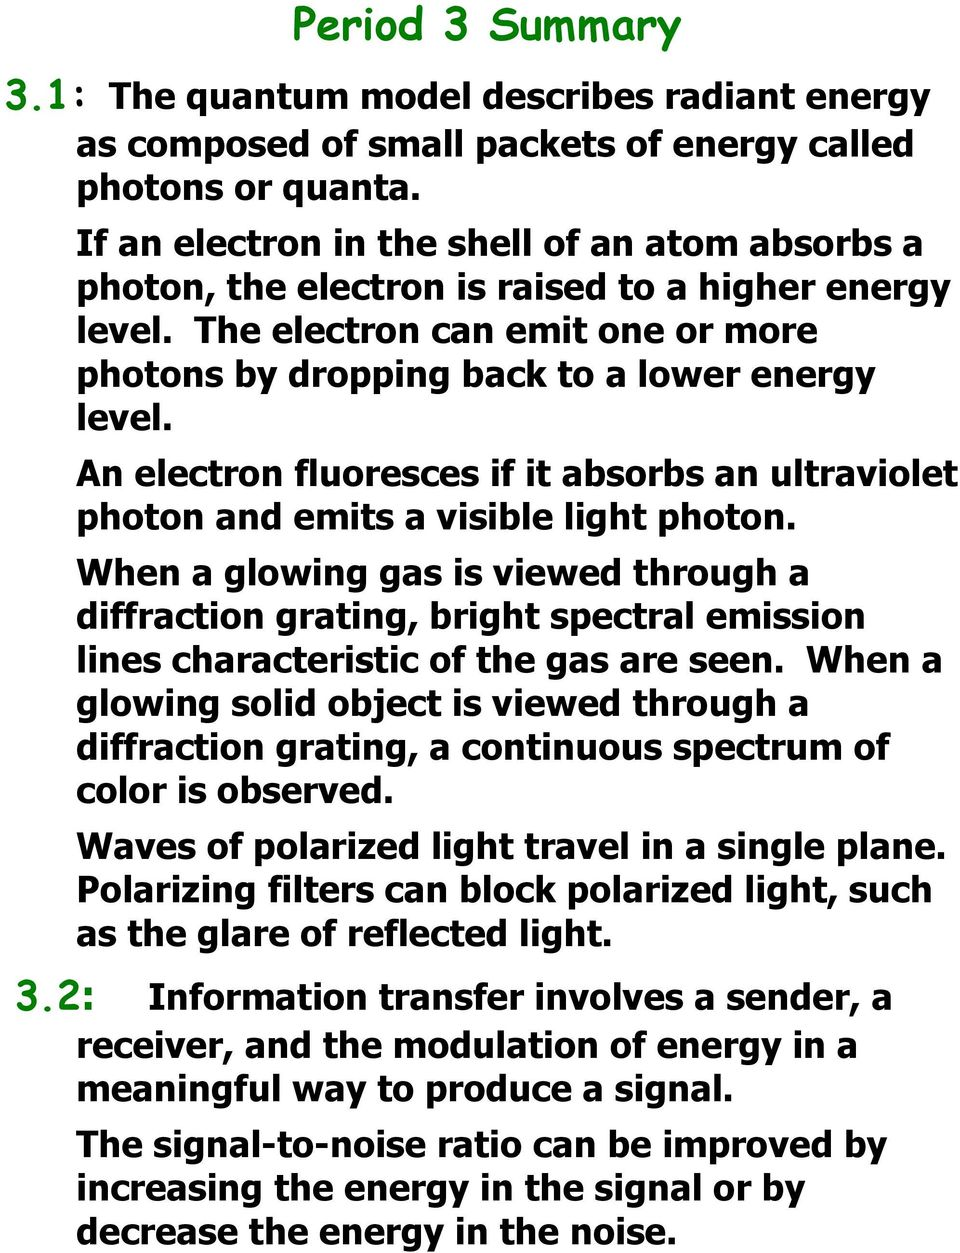 An electron fluoresces if it absorbs an ultraviolet photon and emits a visible light photon.